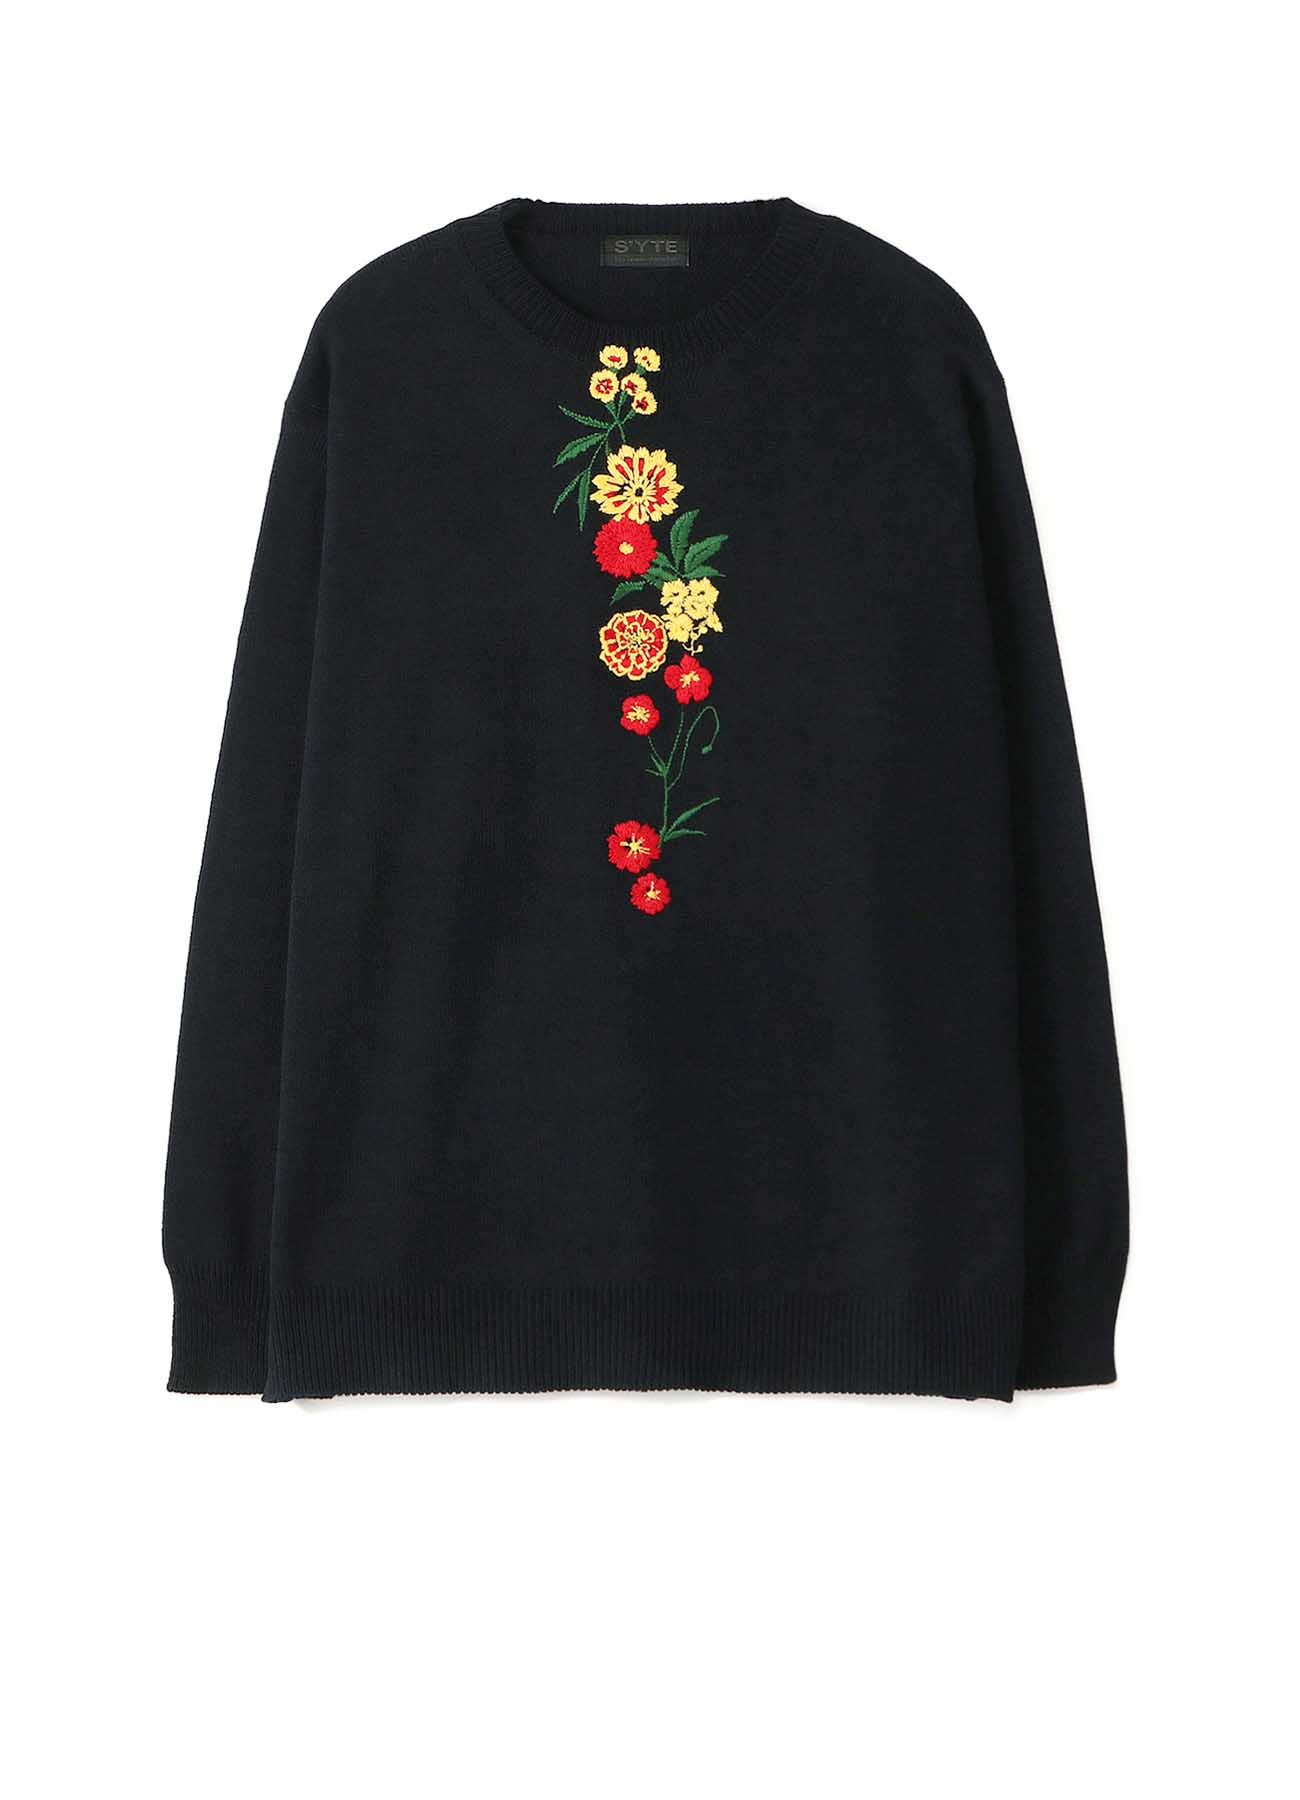 Cotton Acrylic Flower Embroidery Pullover